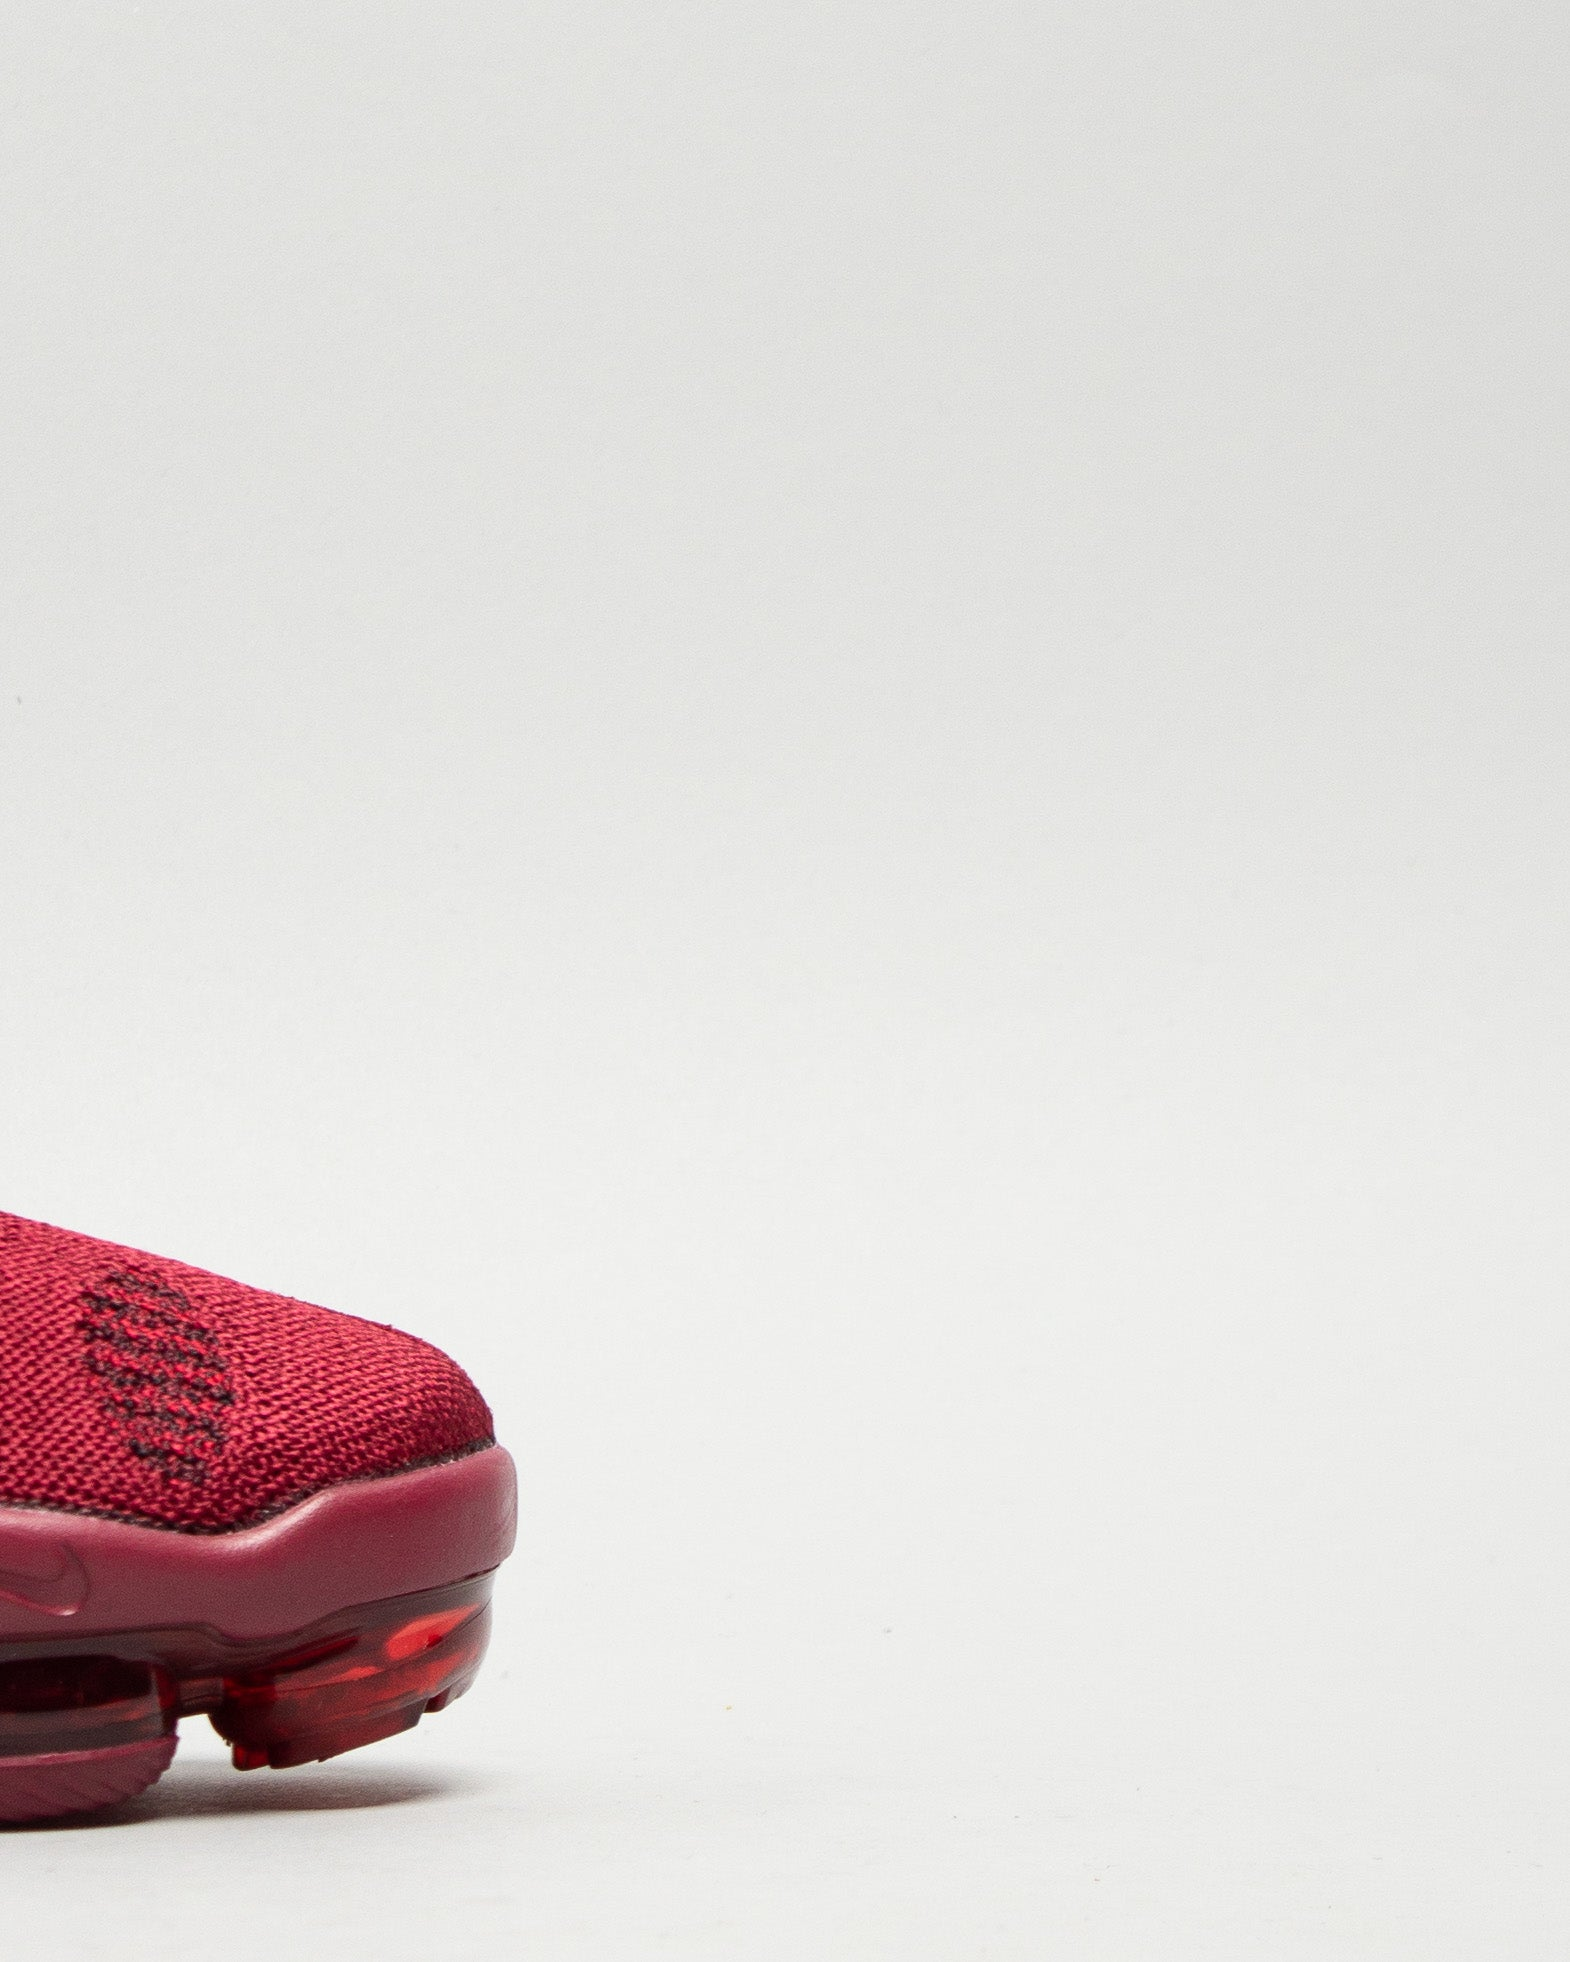 VaporMax Premier Flyknit Team Red/Black/Gym Red